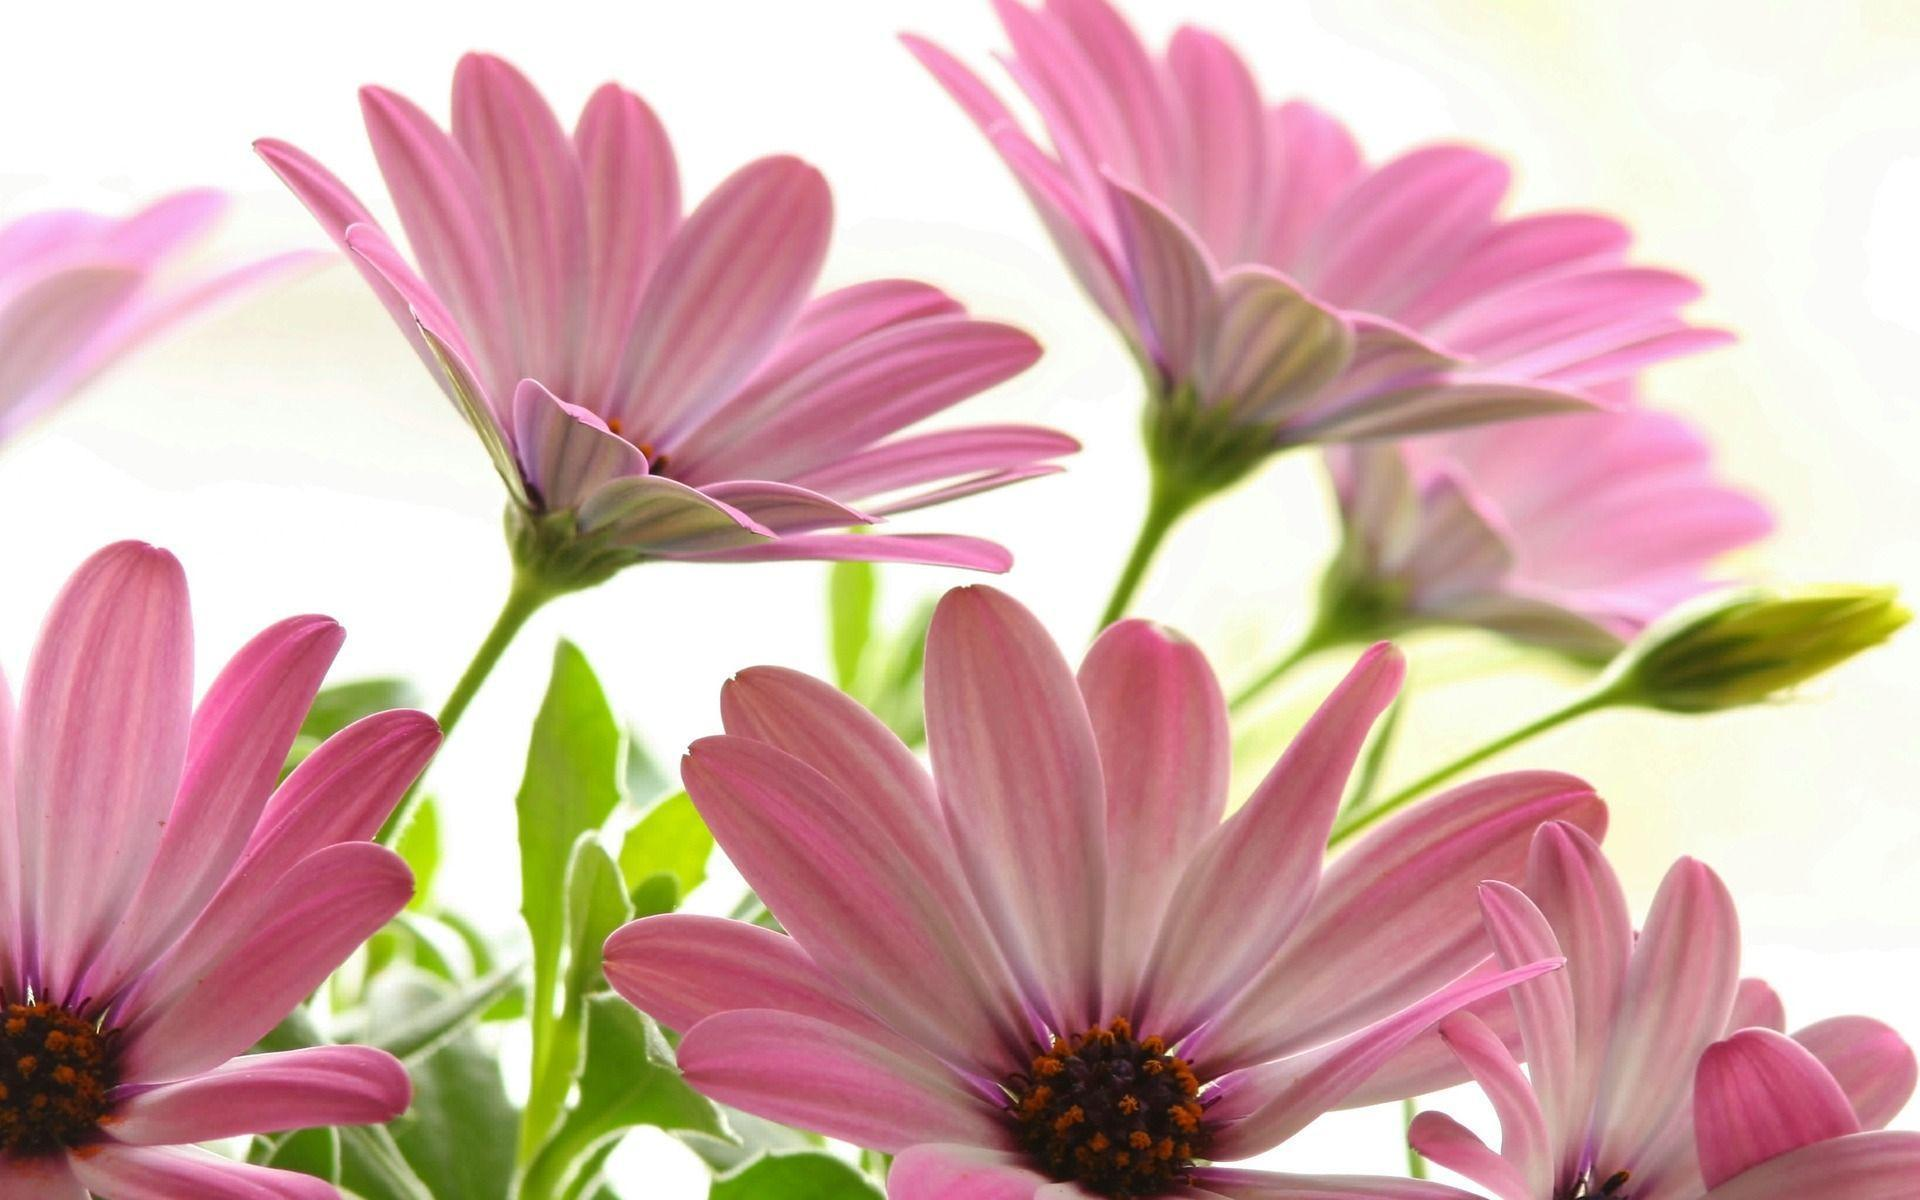 Pink flower wallpaper flowers nature wallpapers for free download ...